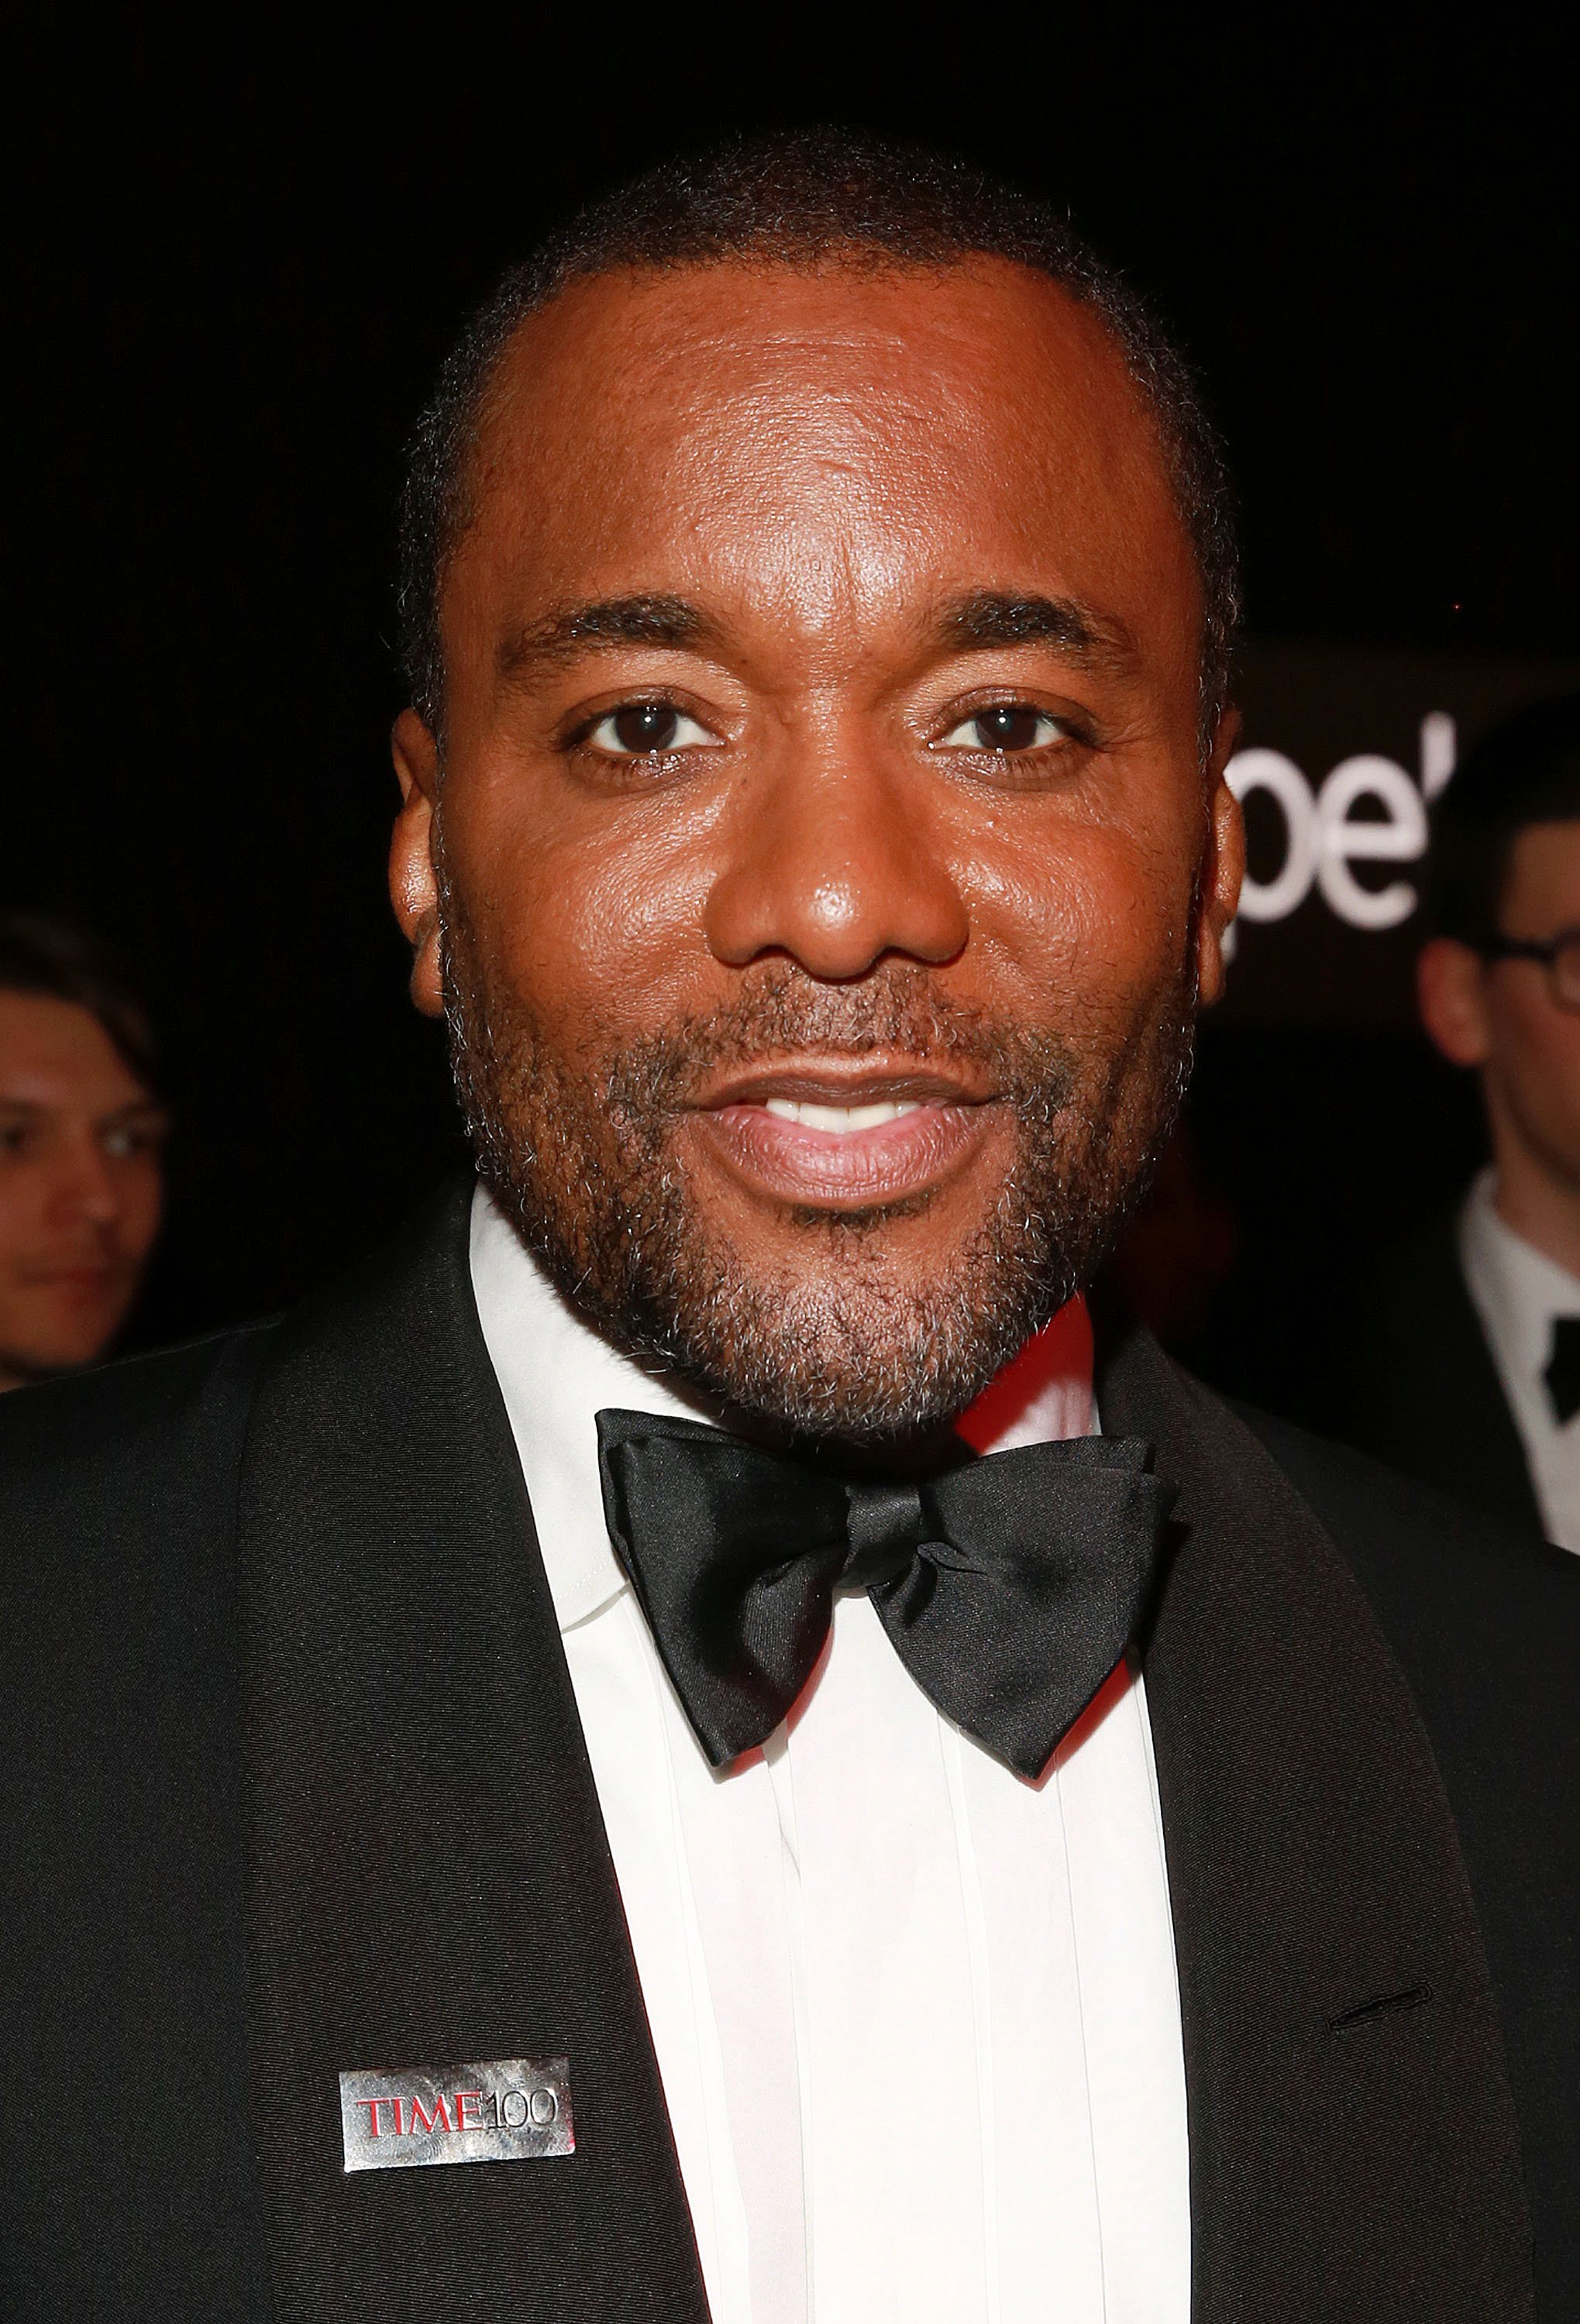 Lee Daniels For mobile